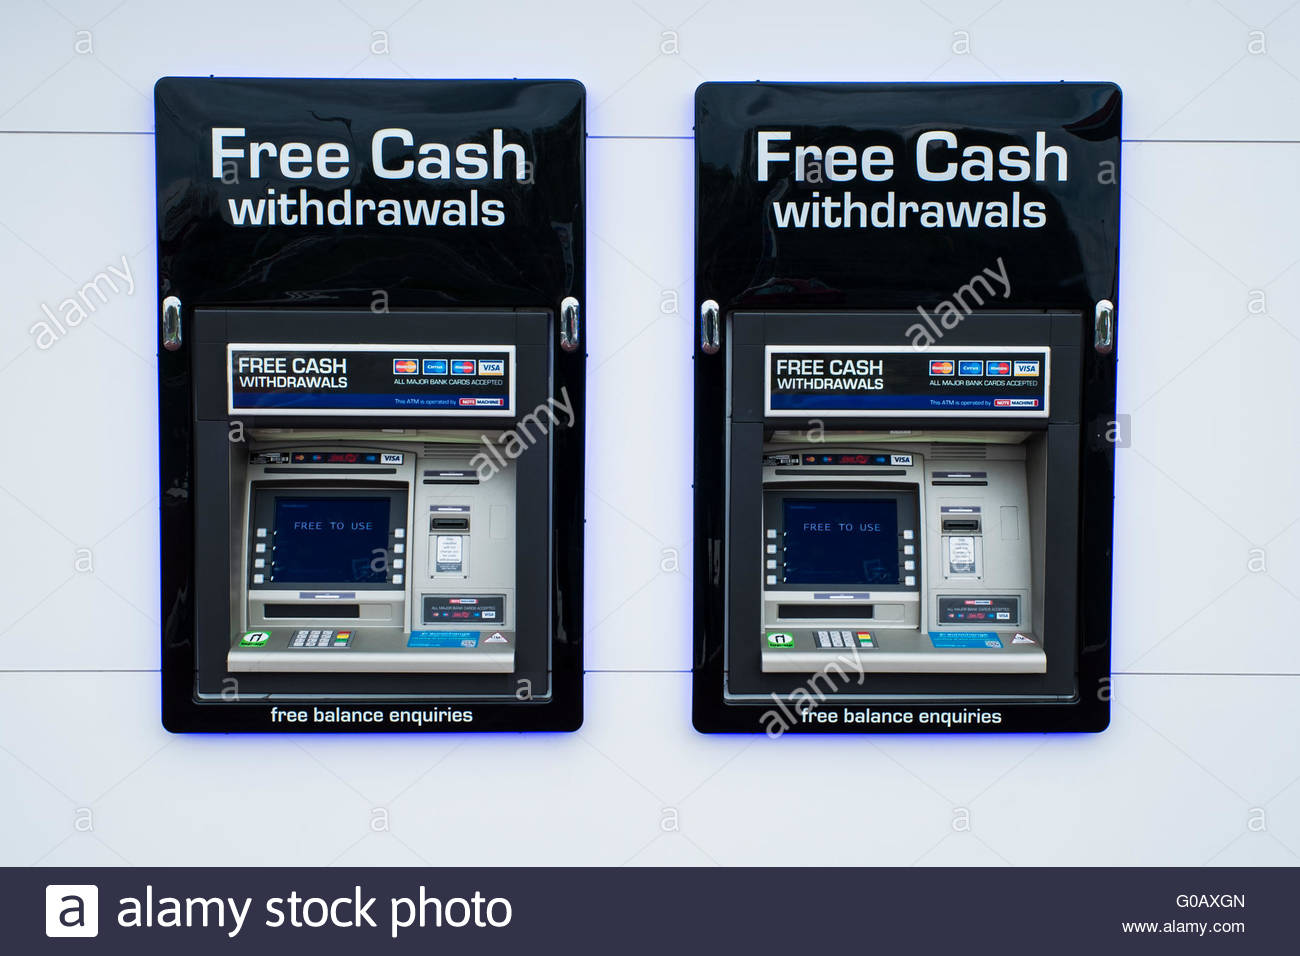 free-cash-withdrawals-at-a-pair-of-atm-cash-machines-G0AXGN